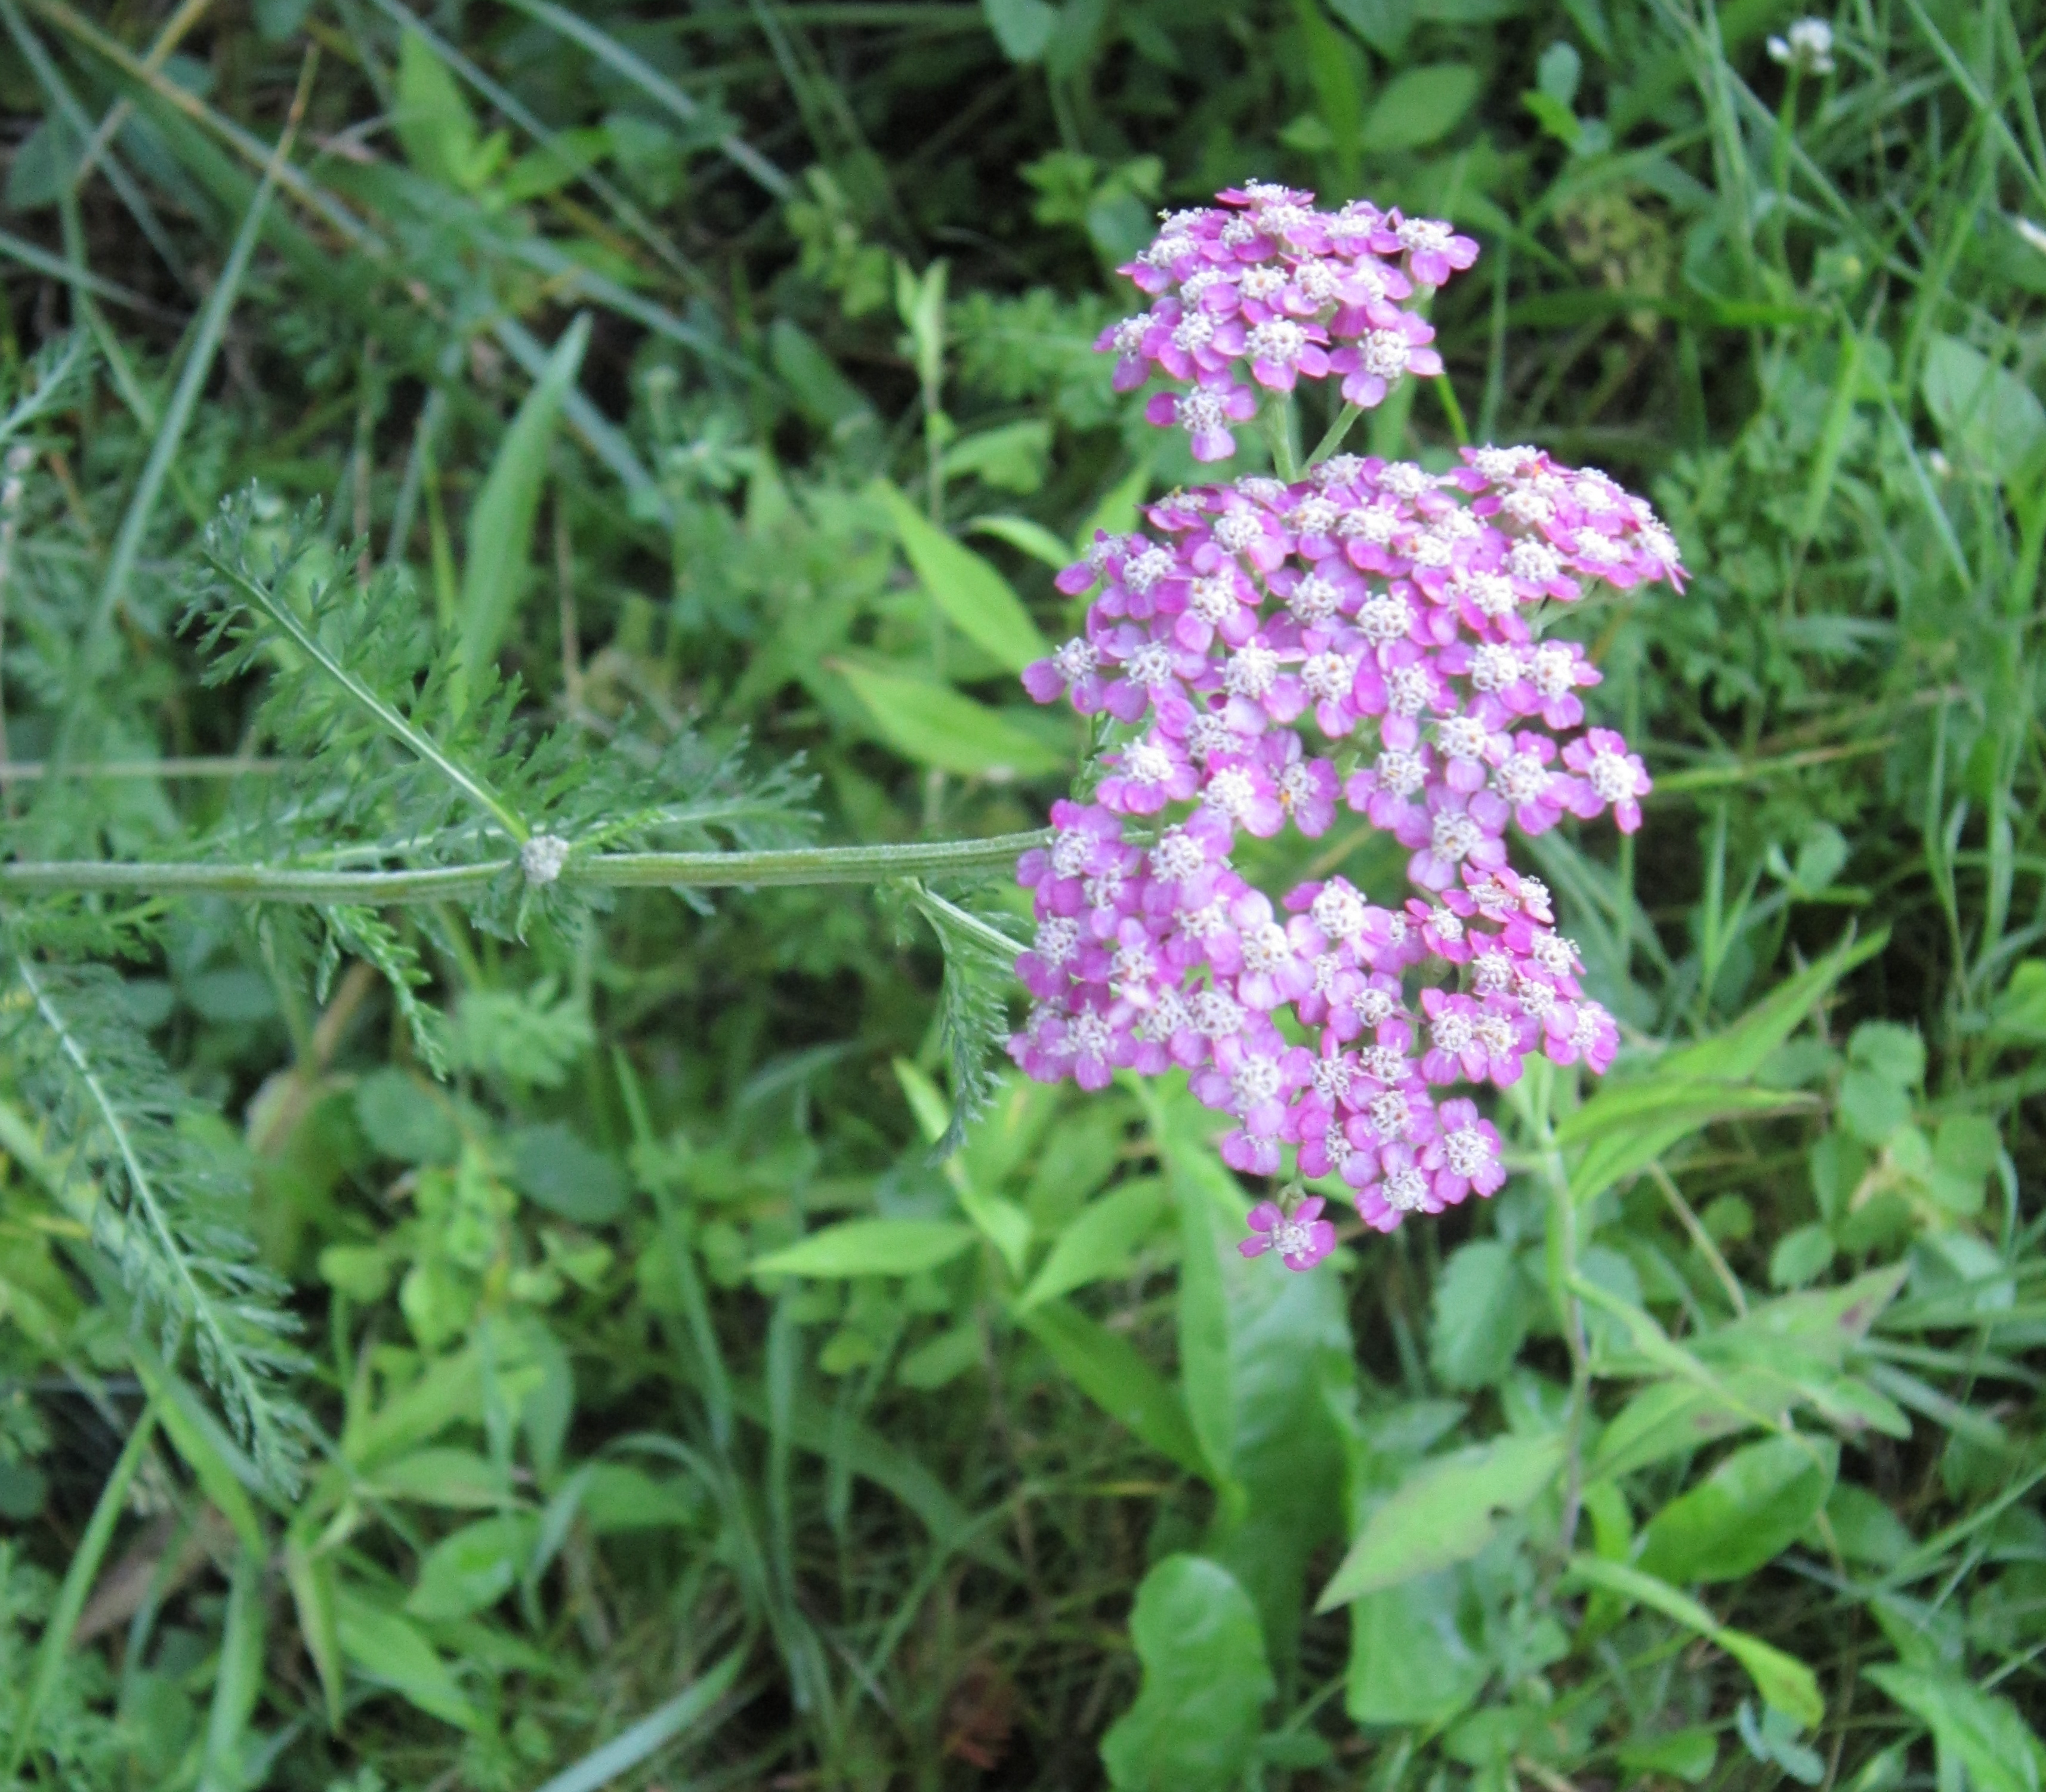 Homemade Herbal Bug Spray with Yarrow | These Light Footsteps